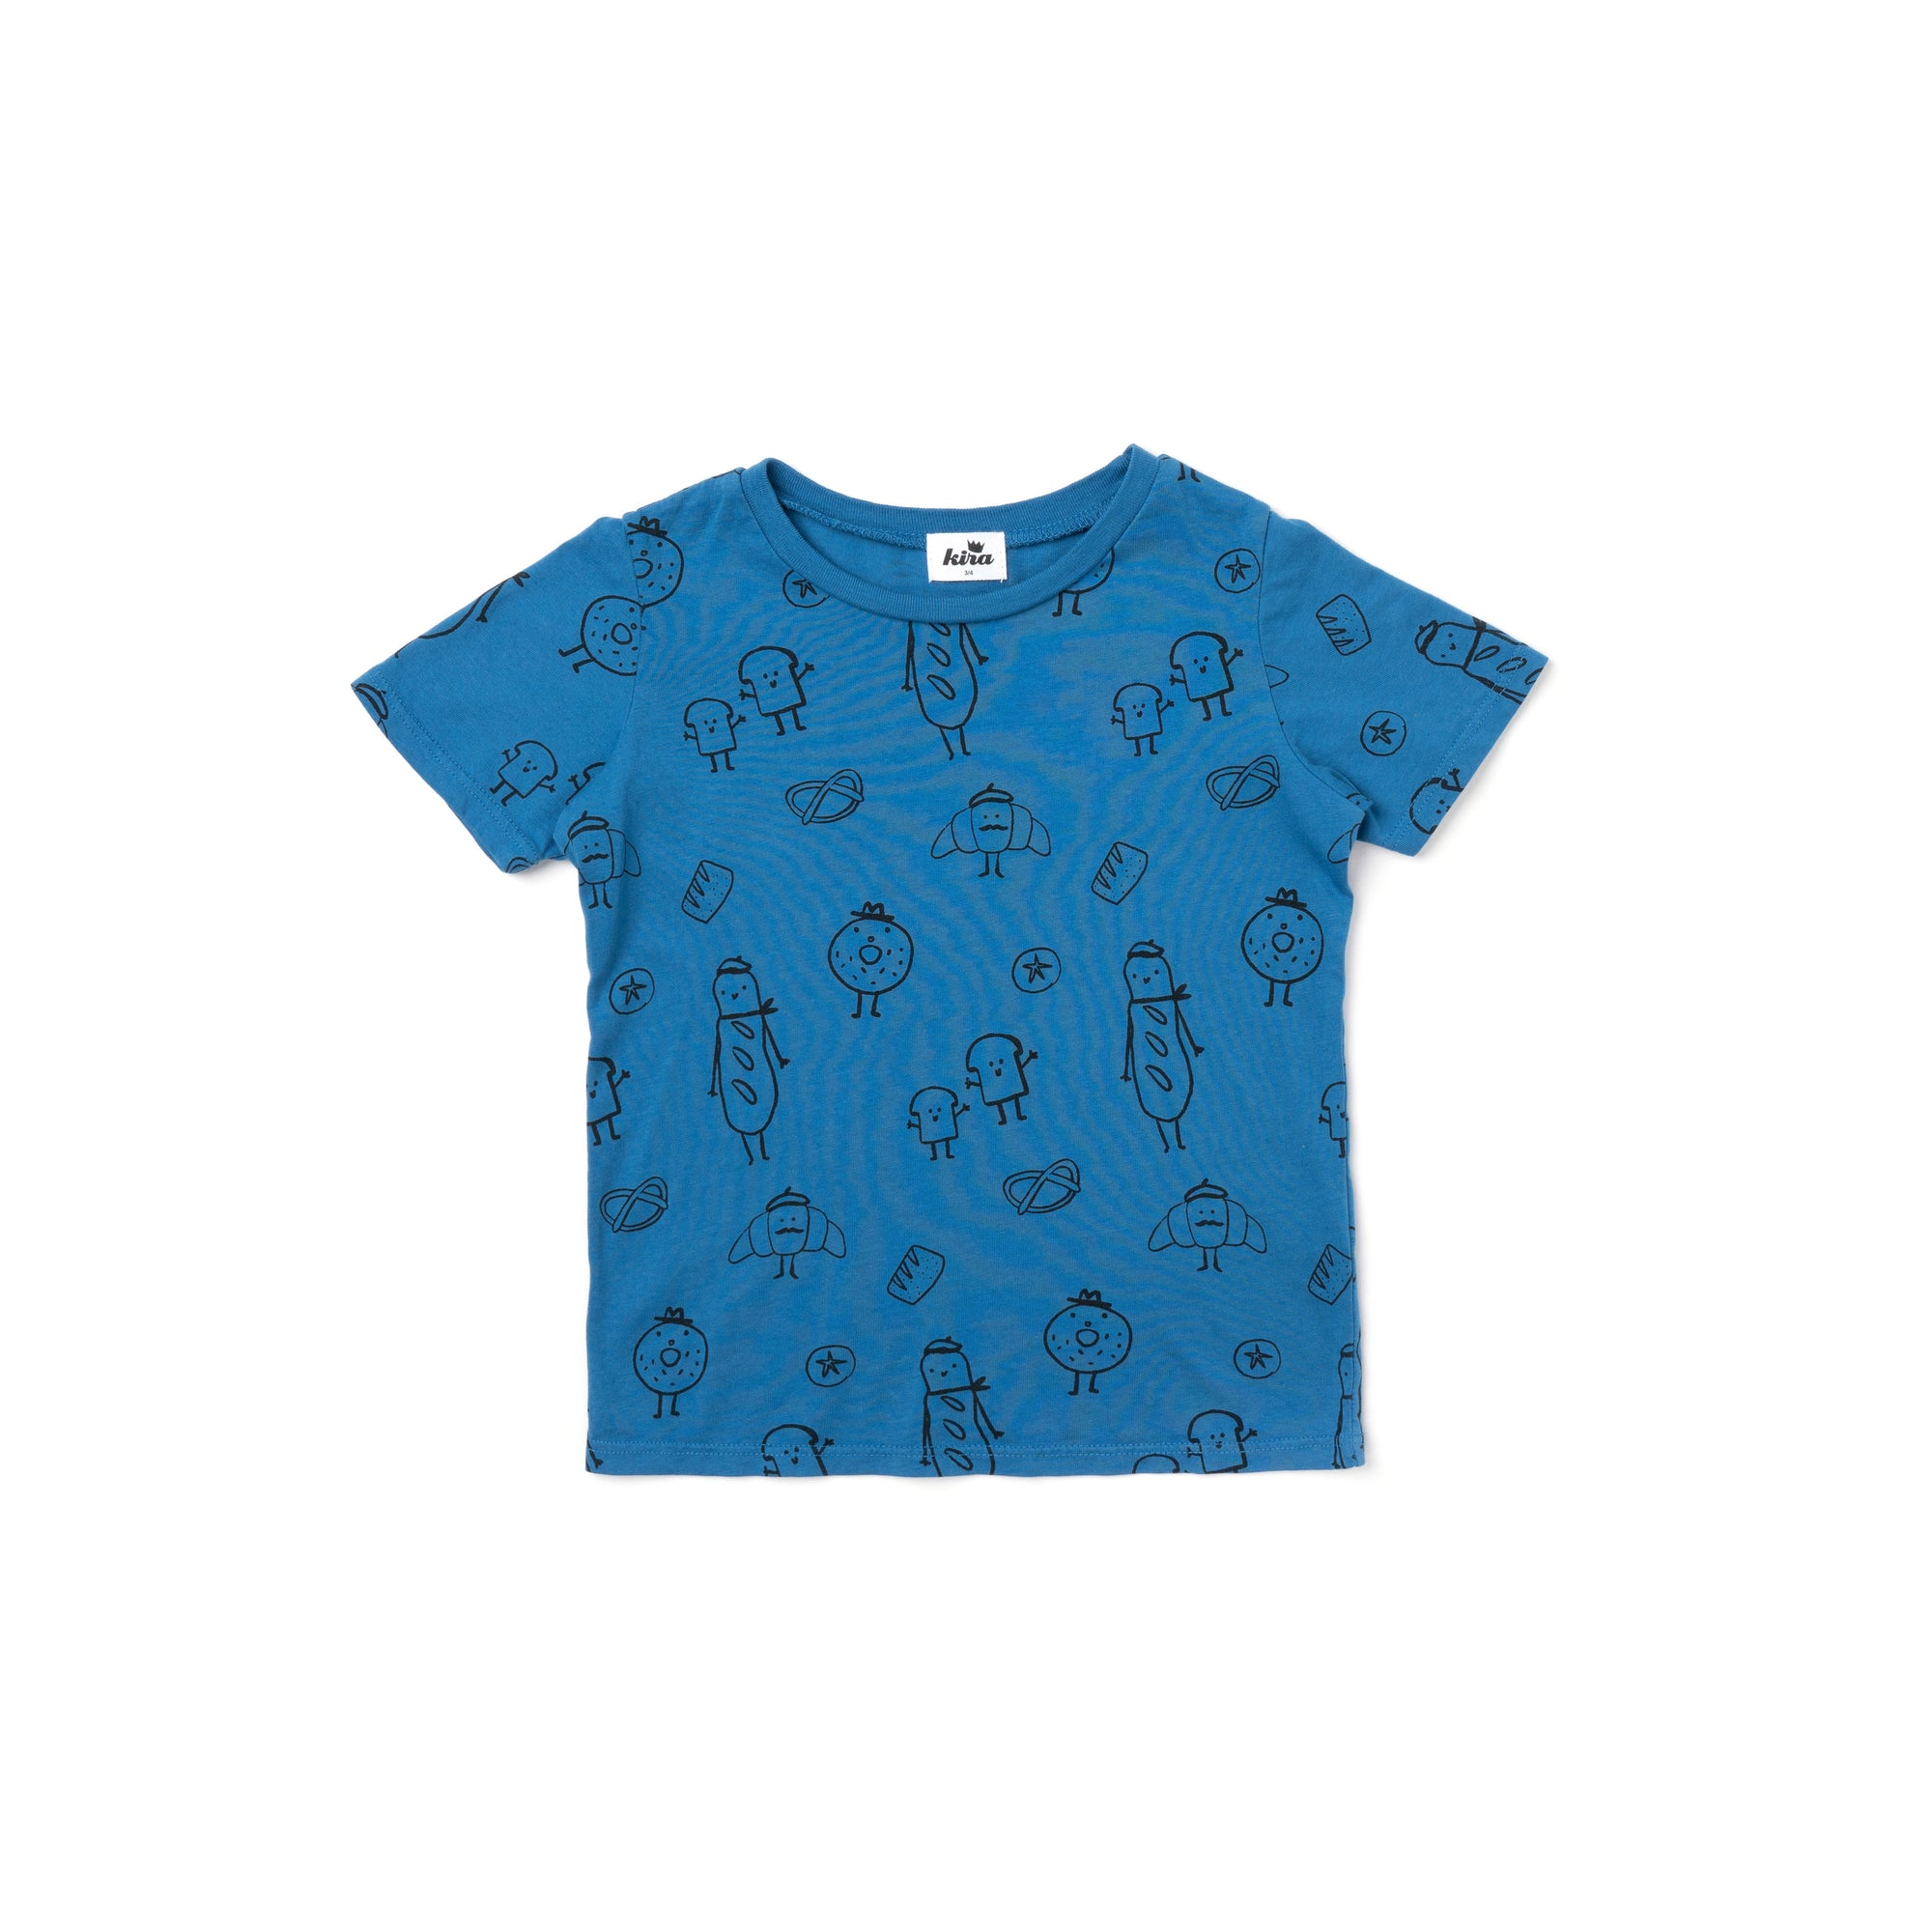 Bread Print Short Sleeve T-shirt, Steel Blue